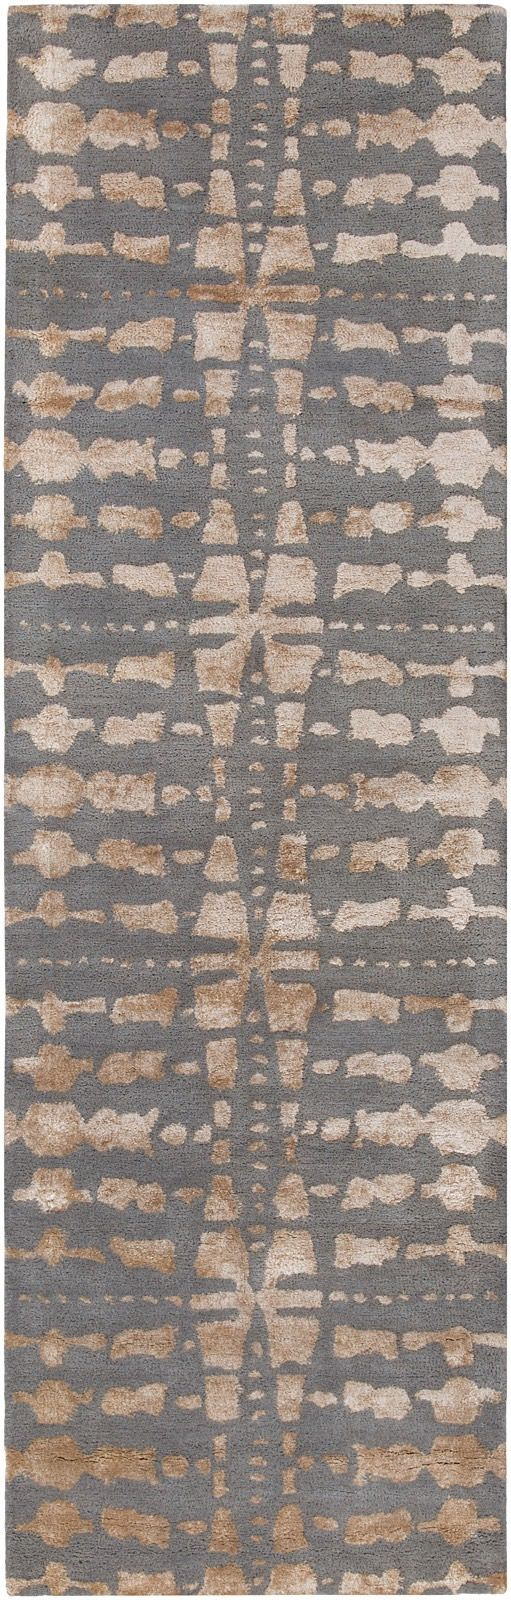 surya ridgewood contemporary area rug collection